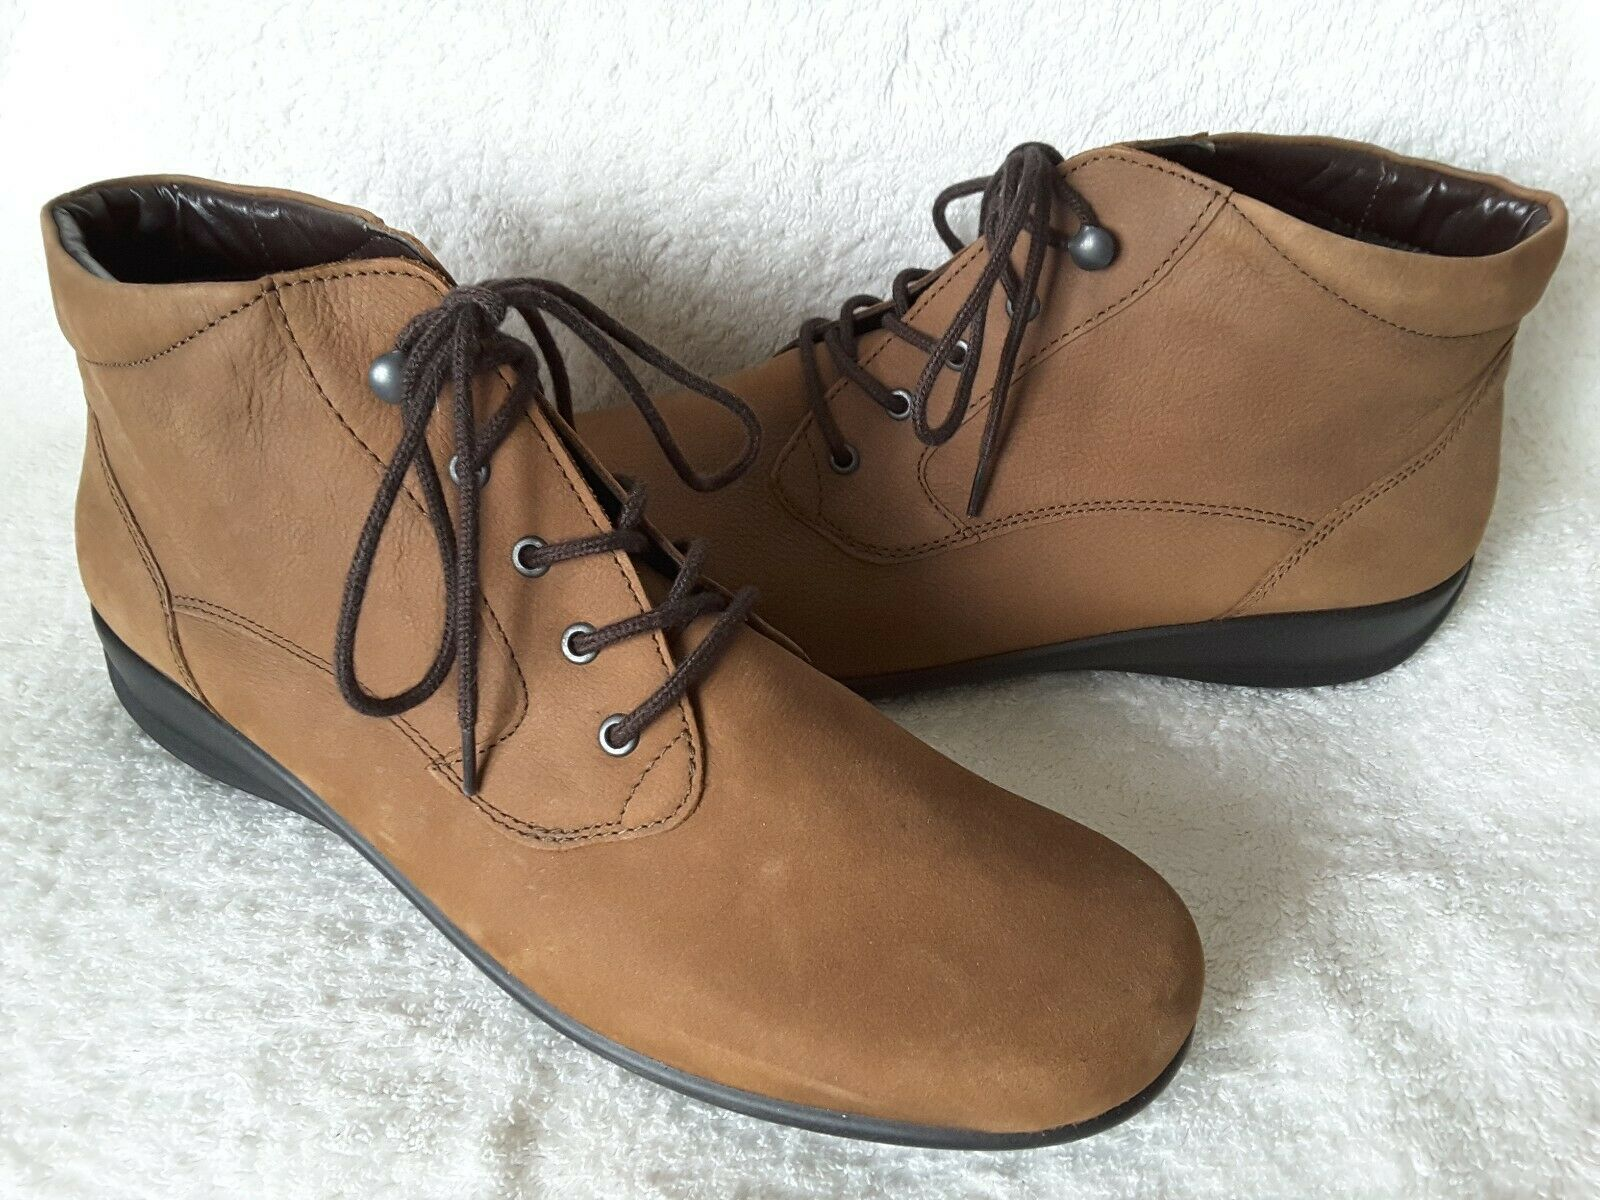 Rohde marron Nubuck Daim Lacets Cheville Bottes UK 8 Brand New without tags